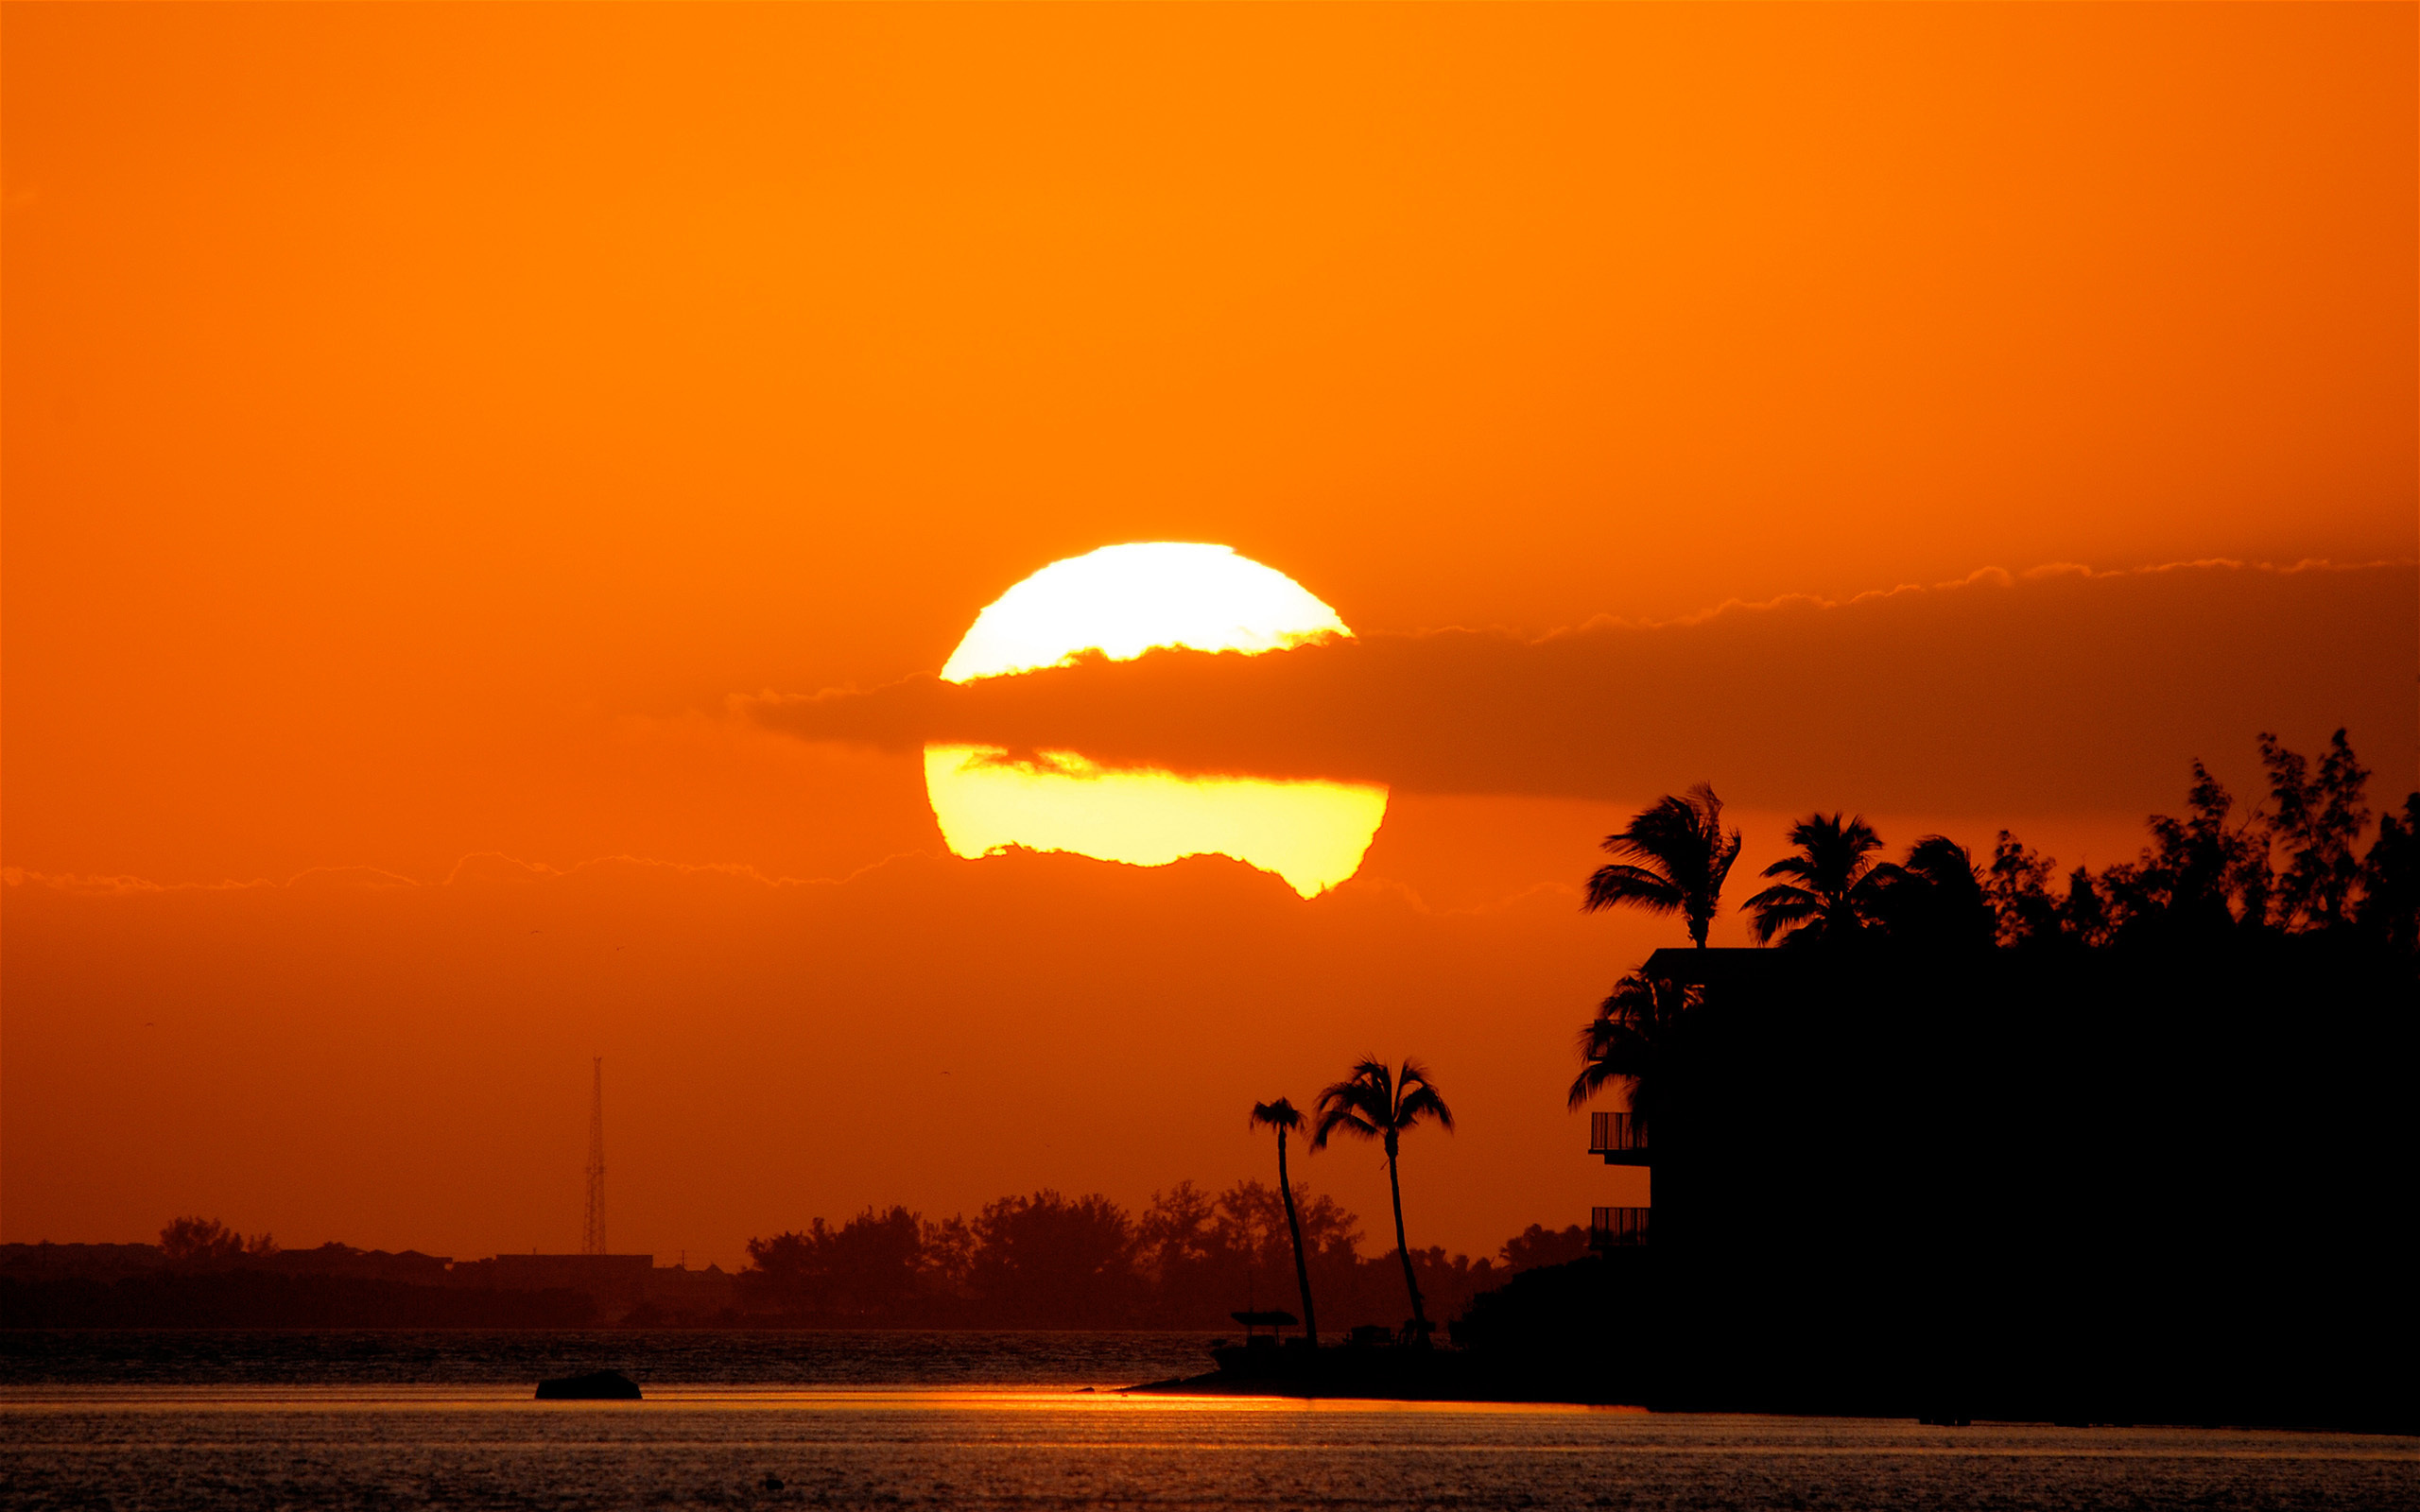 sunset images download